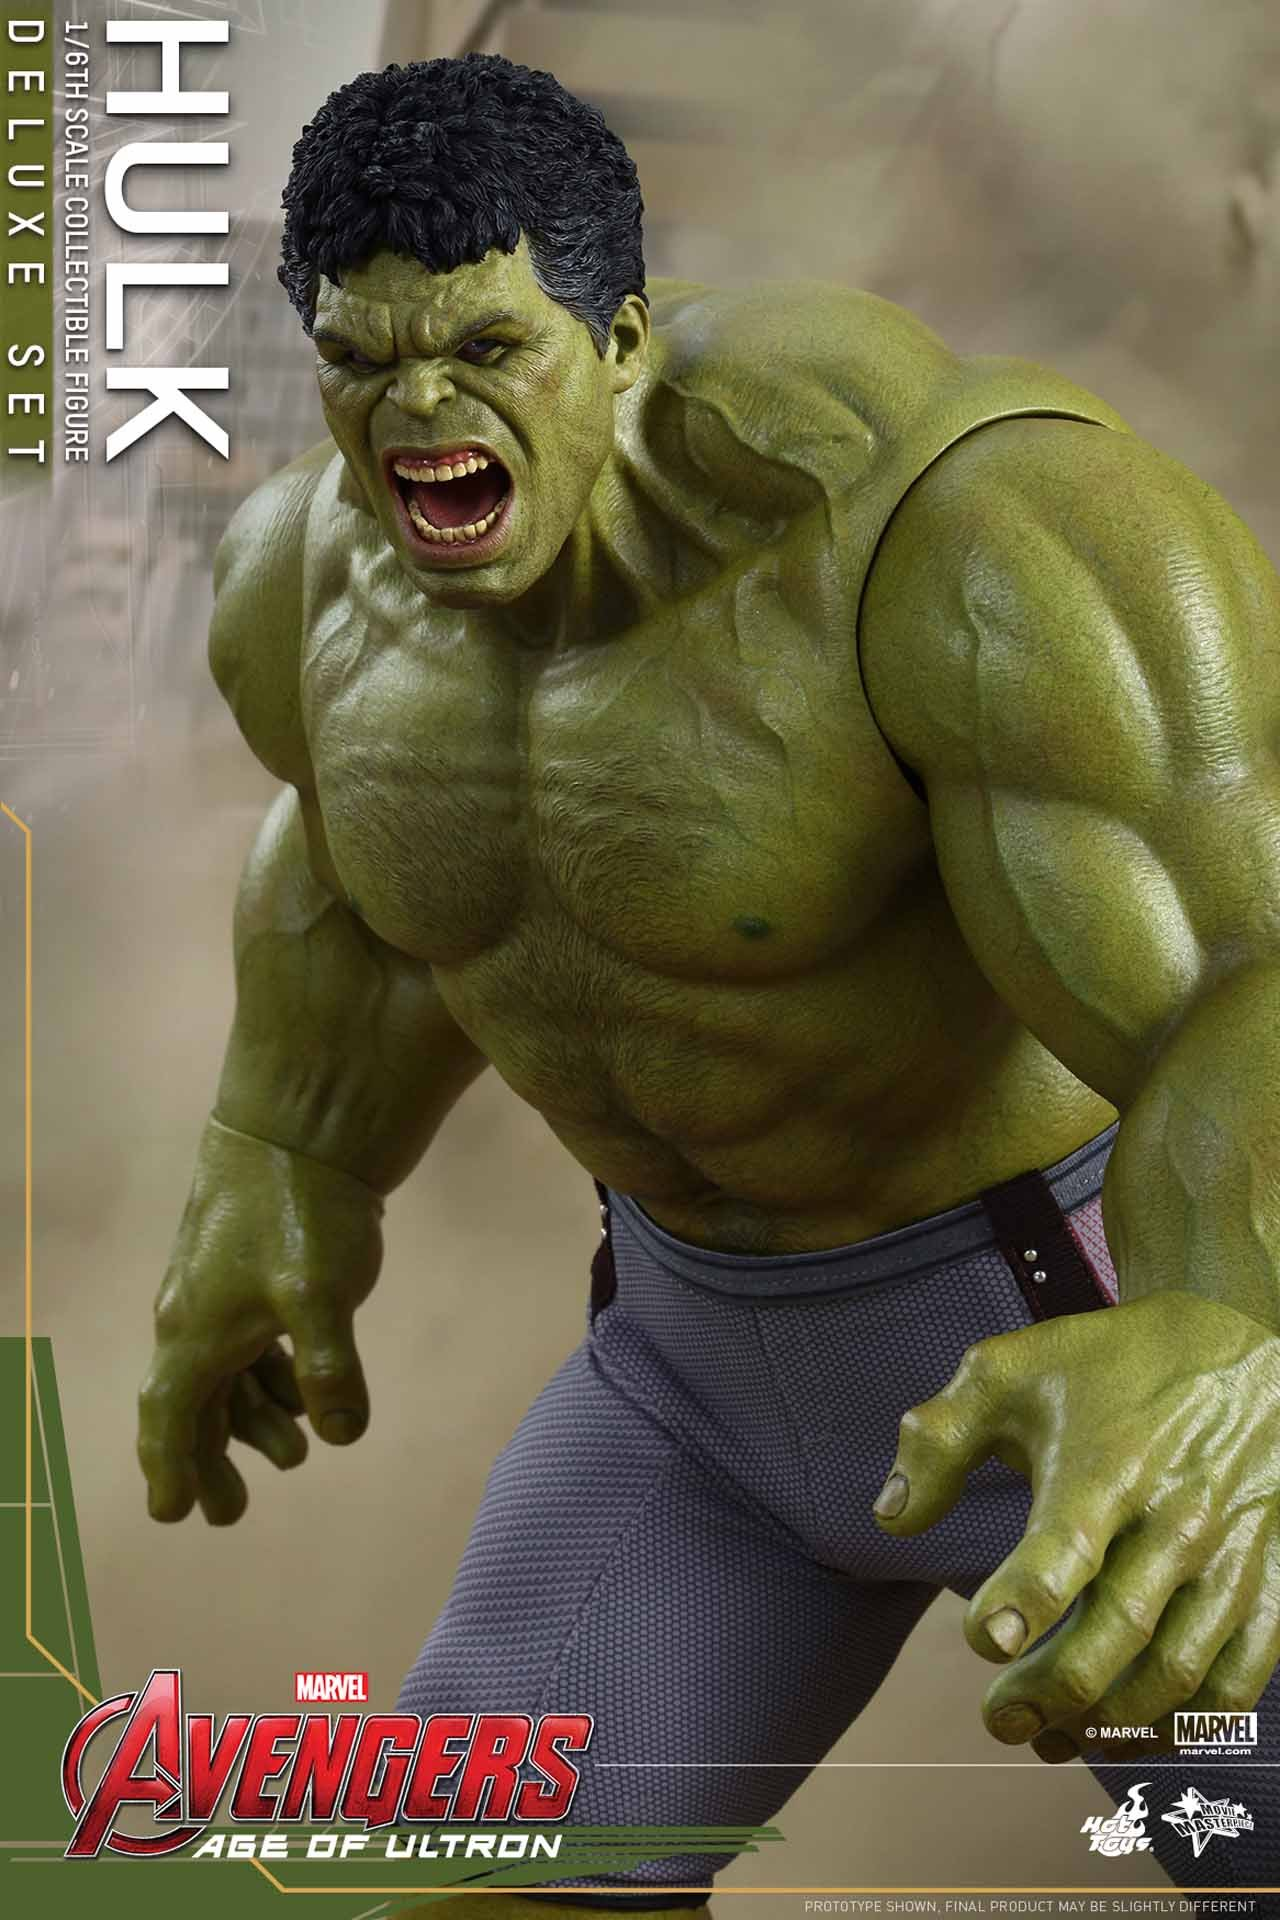 Hot Toys Reveals Avengers: Age of Ultron 1/6th Scale Hulk ...